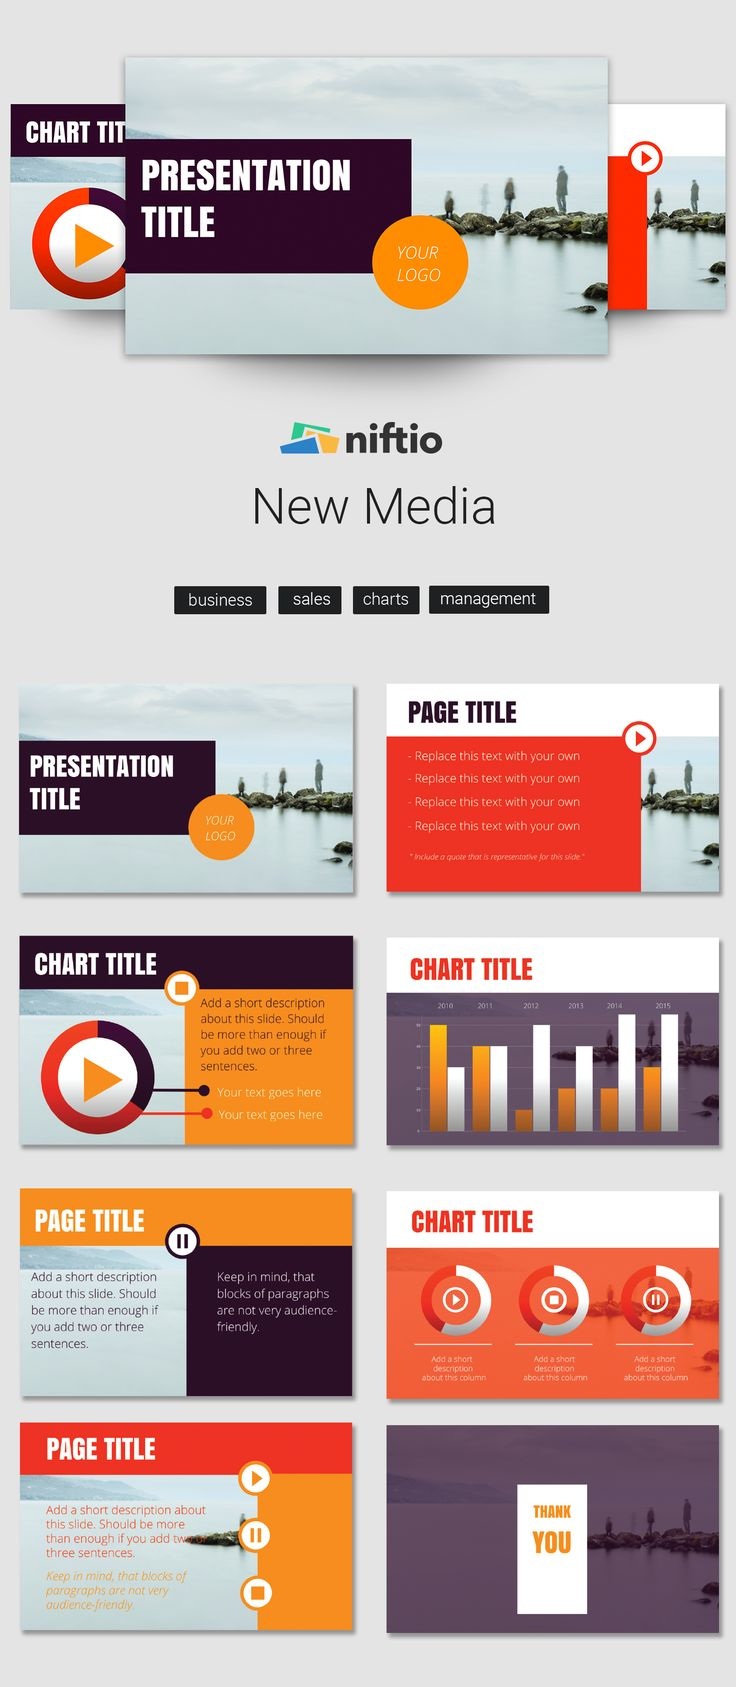 New PowerPoint Alternative - Presentation Templates by Niftio - Presentation software